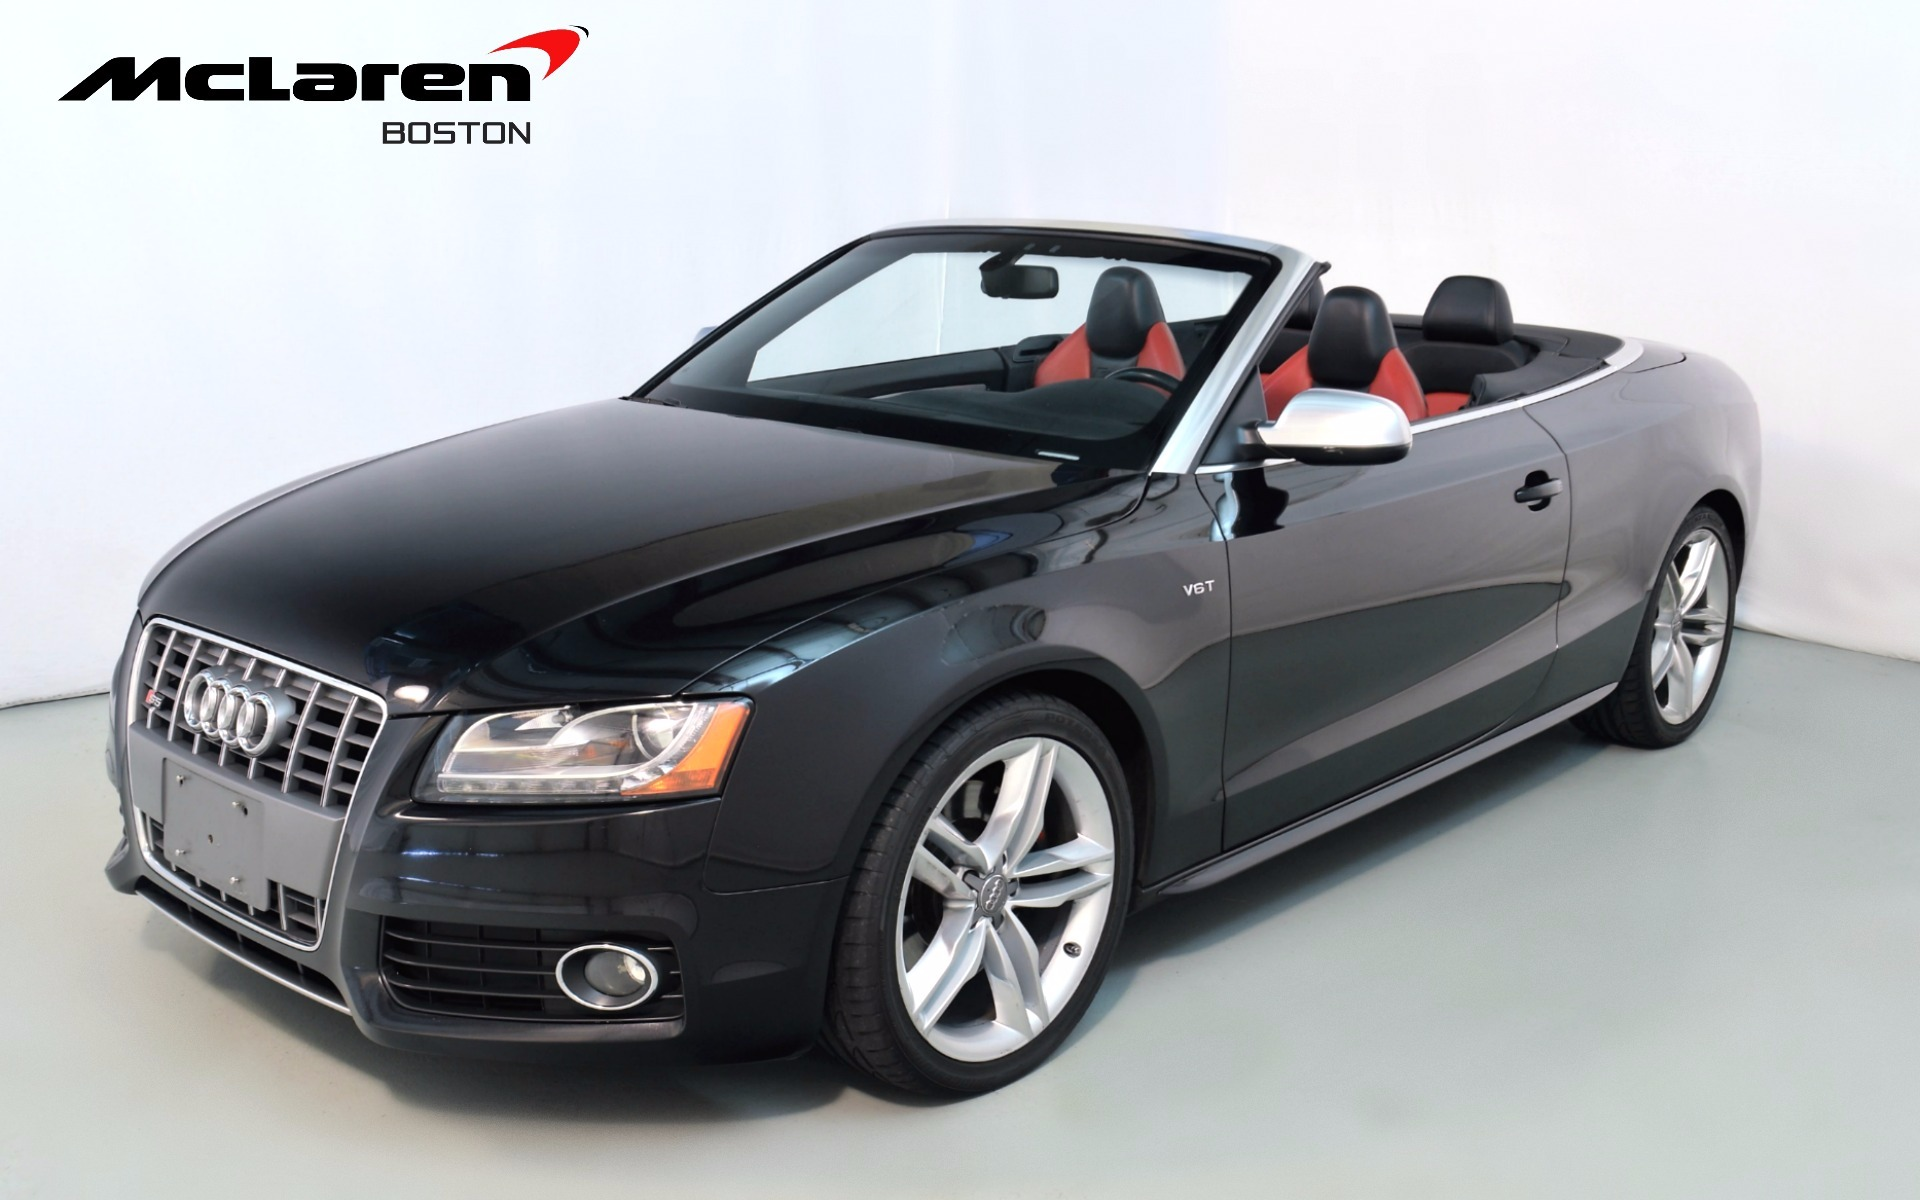 2010 audi s5 premium plus for sale in norwell ma 011411. Black Bedroom Furniture Sets. Home Design Ideas